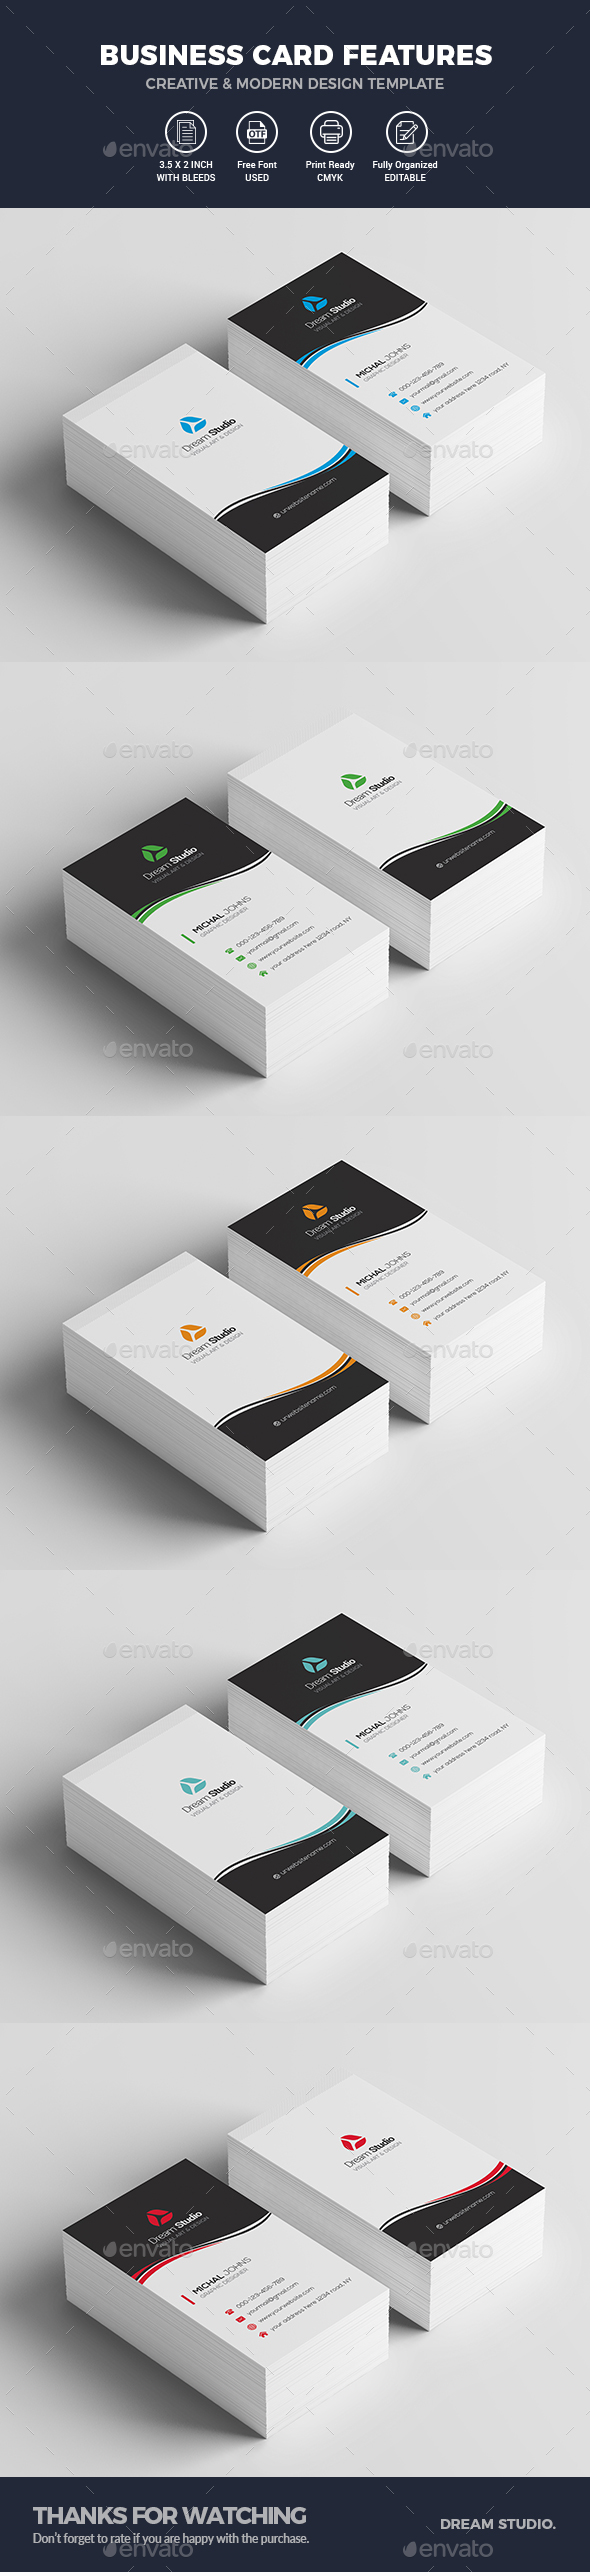 Vertical Business Cards - Business Cards Print Templates